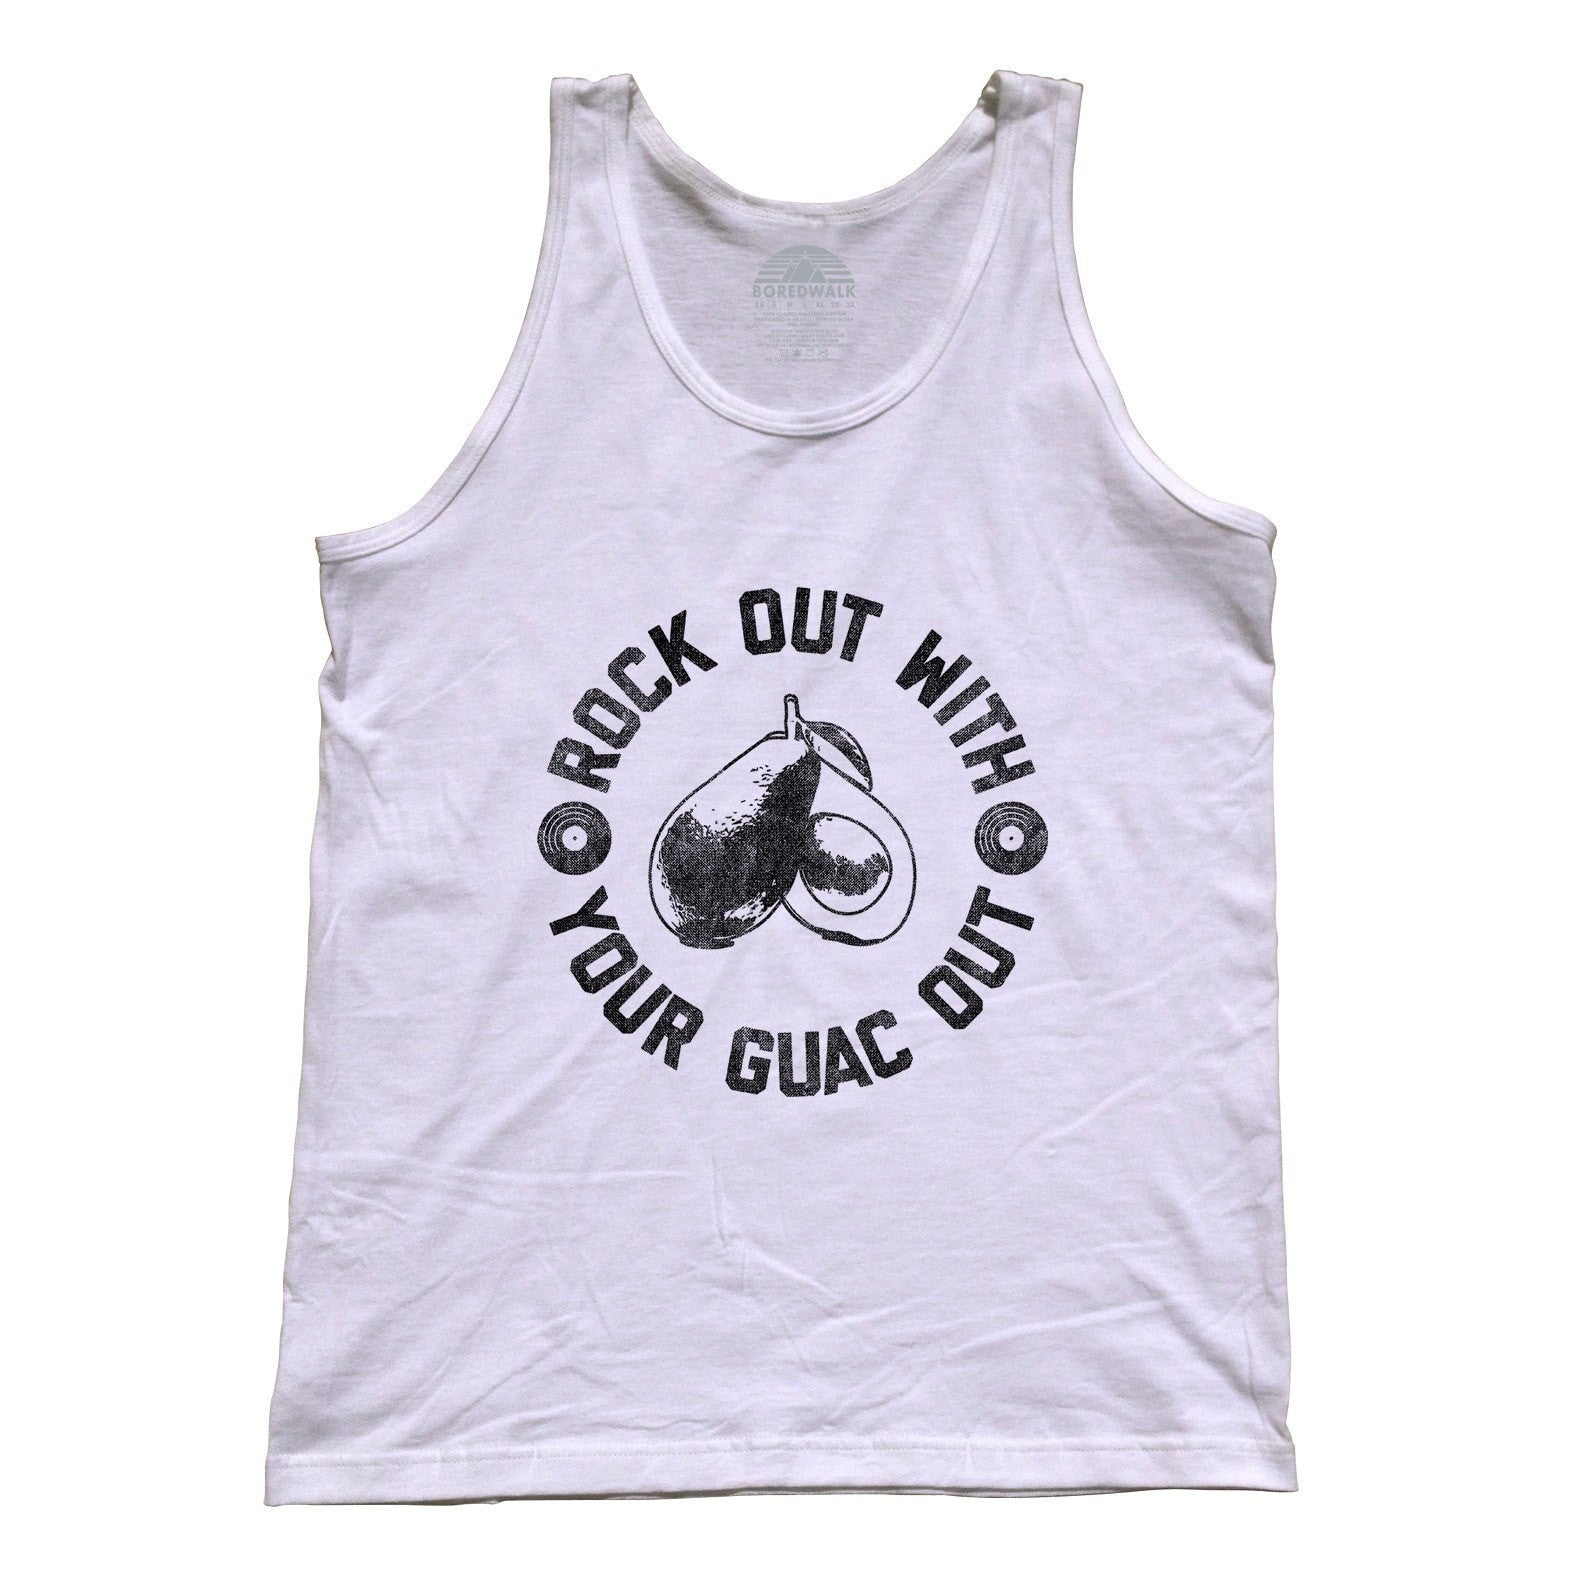 Unisex Rock Out With Your Guac Out Guacamole Tank Top